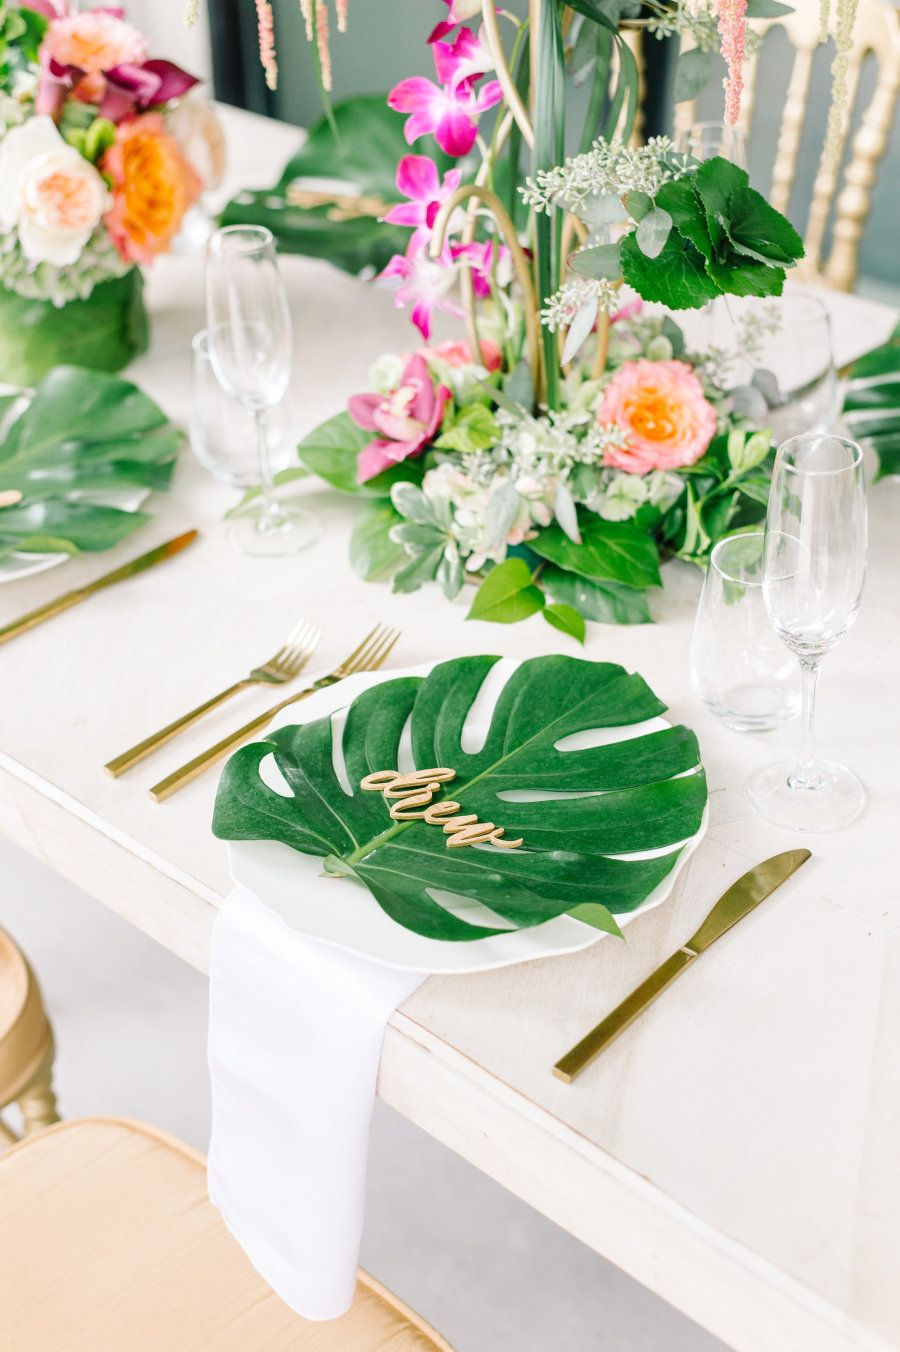 I Like The Plant In Center And Colors Palm Leaf Place Settings Tropical Centerpieces With Orchids Greens Arranged By Coastal Creations